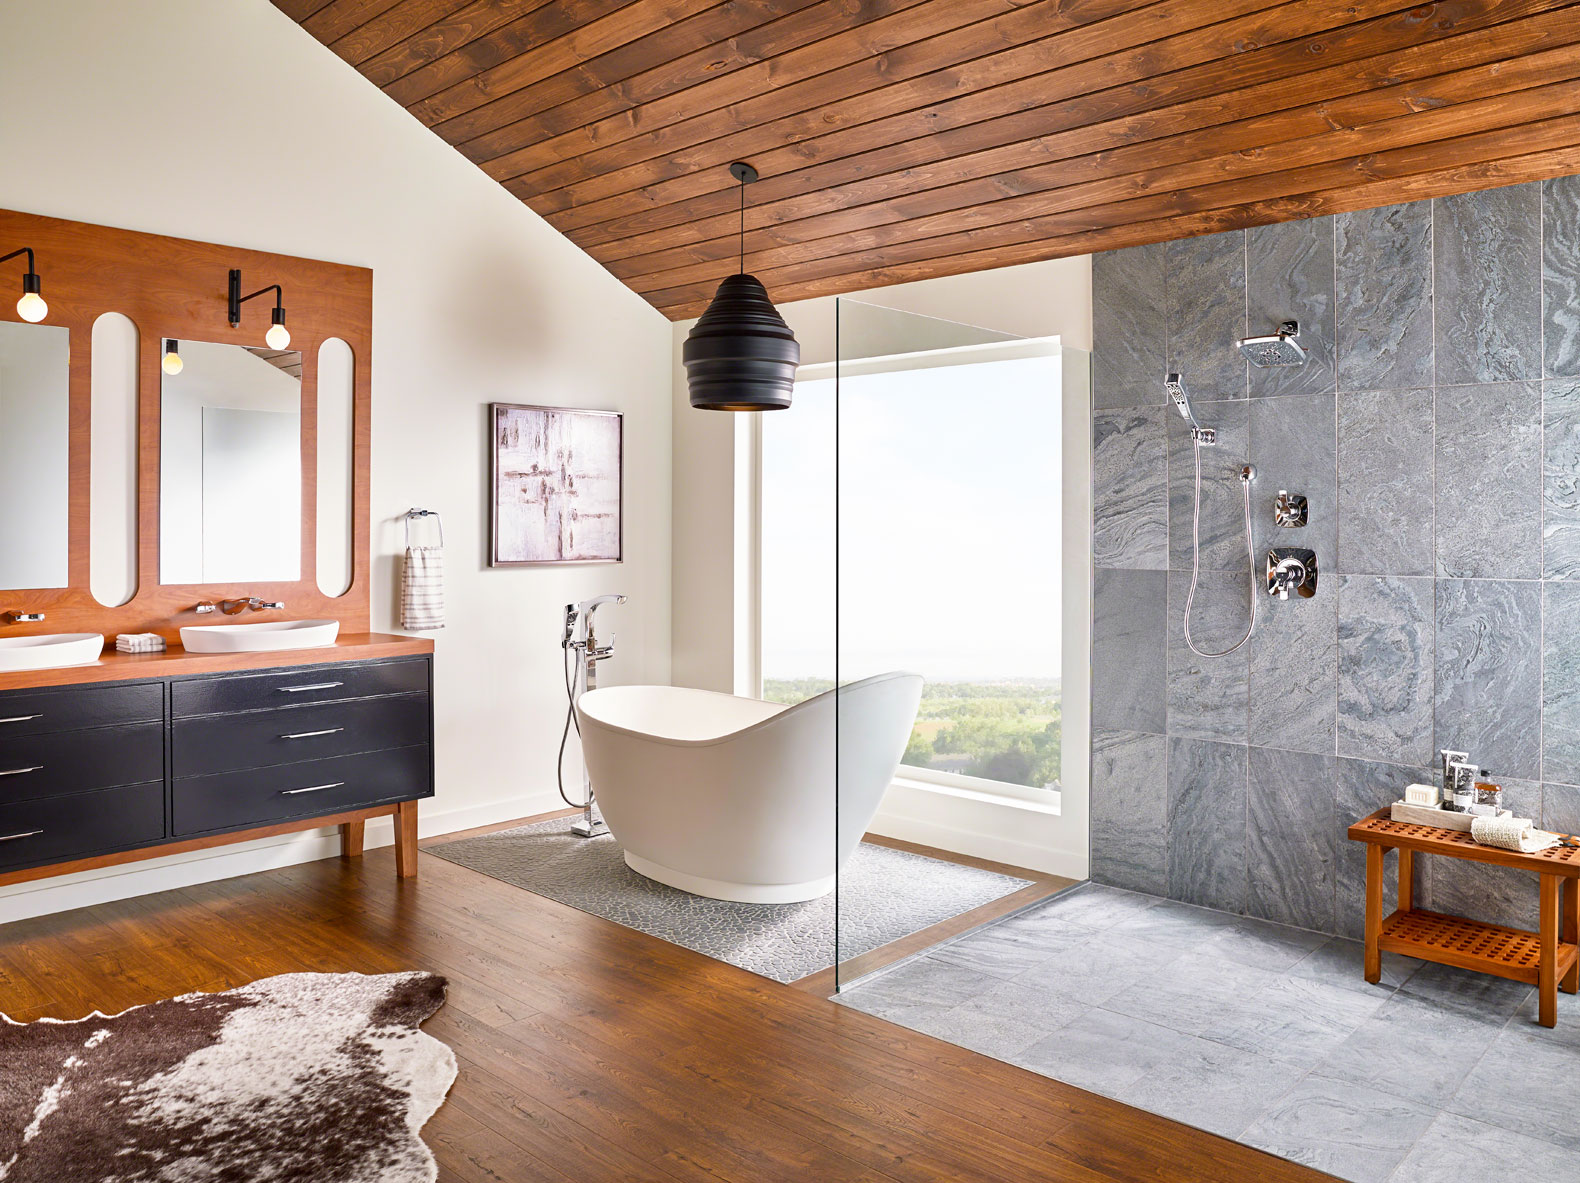 15 stunning examples of interior design using natural stone